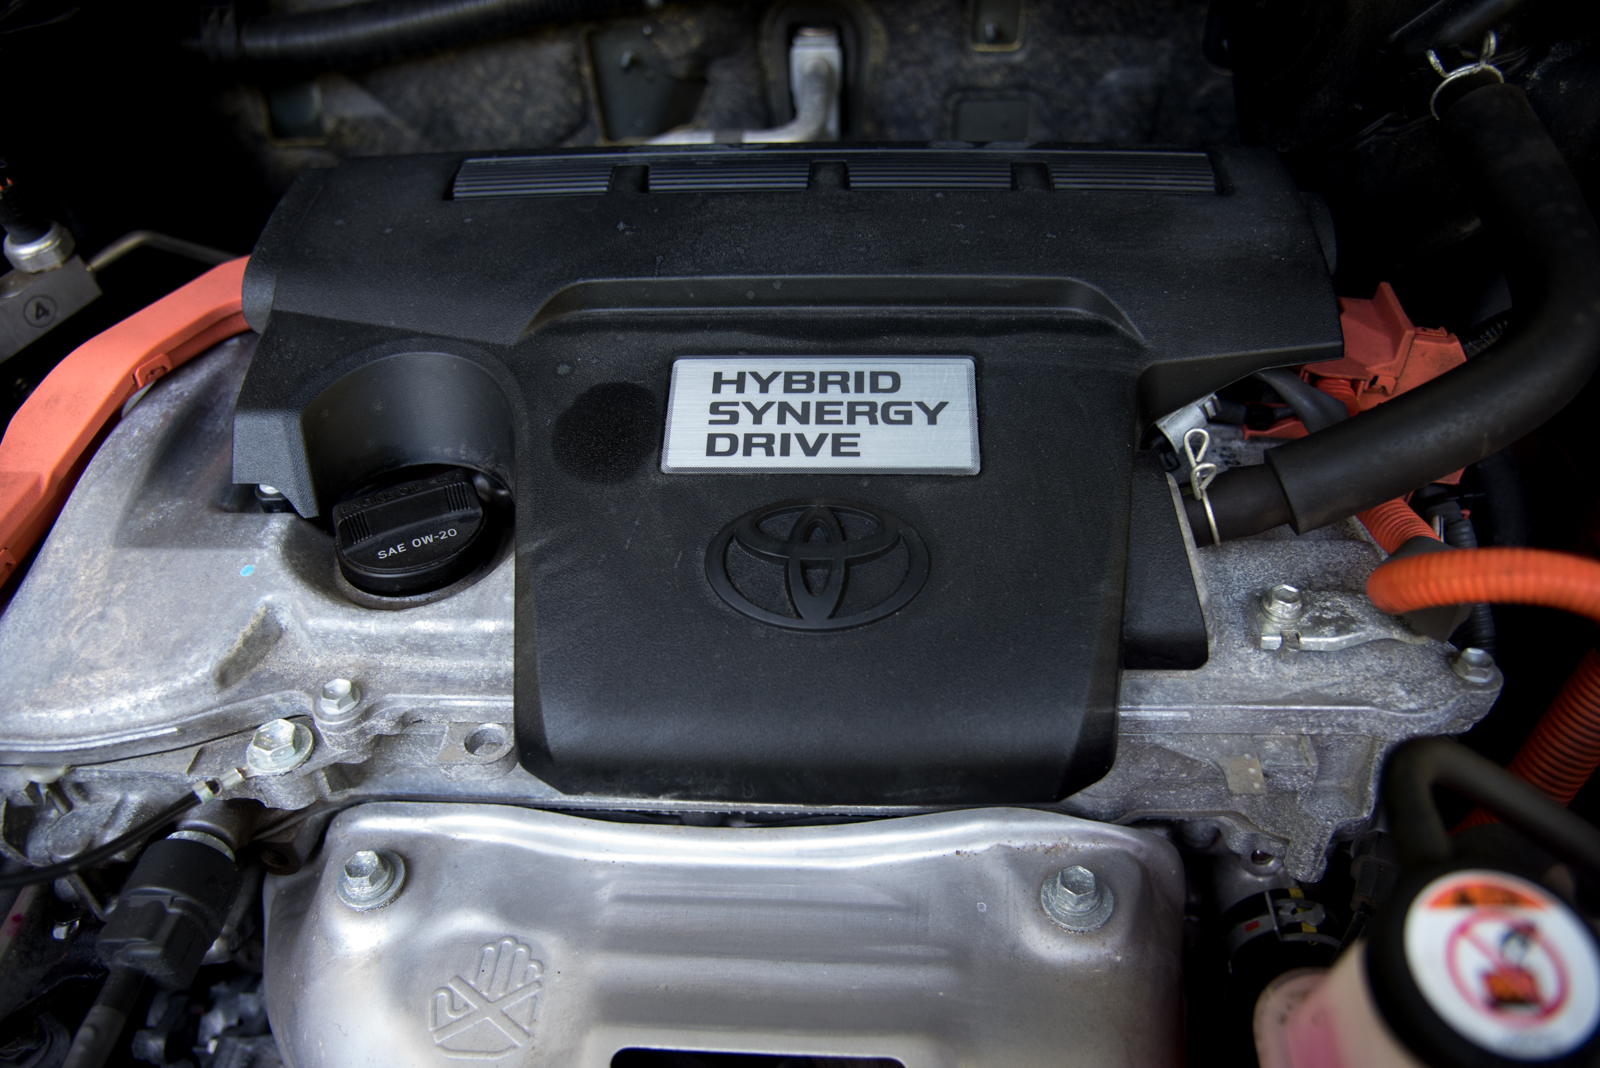 Hybrid engine - the pros and cons